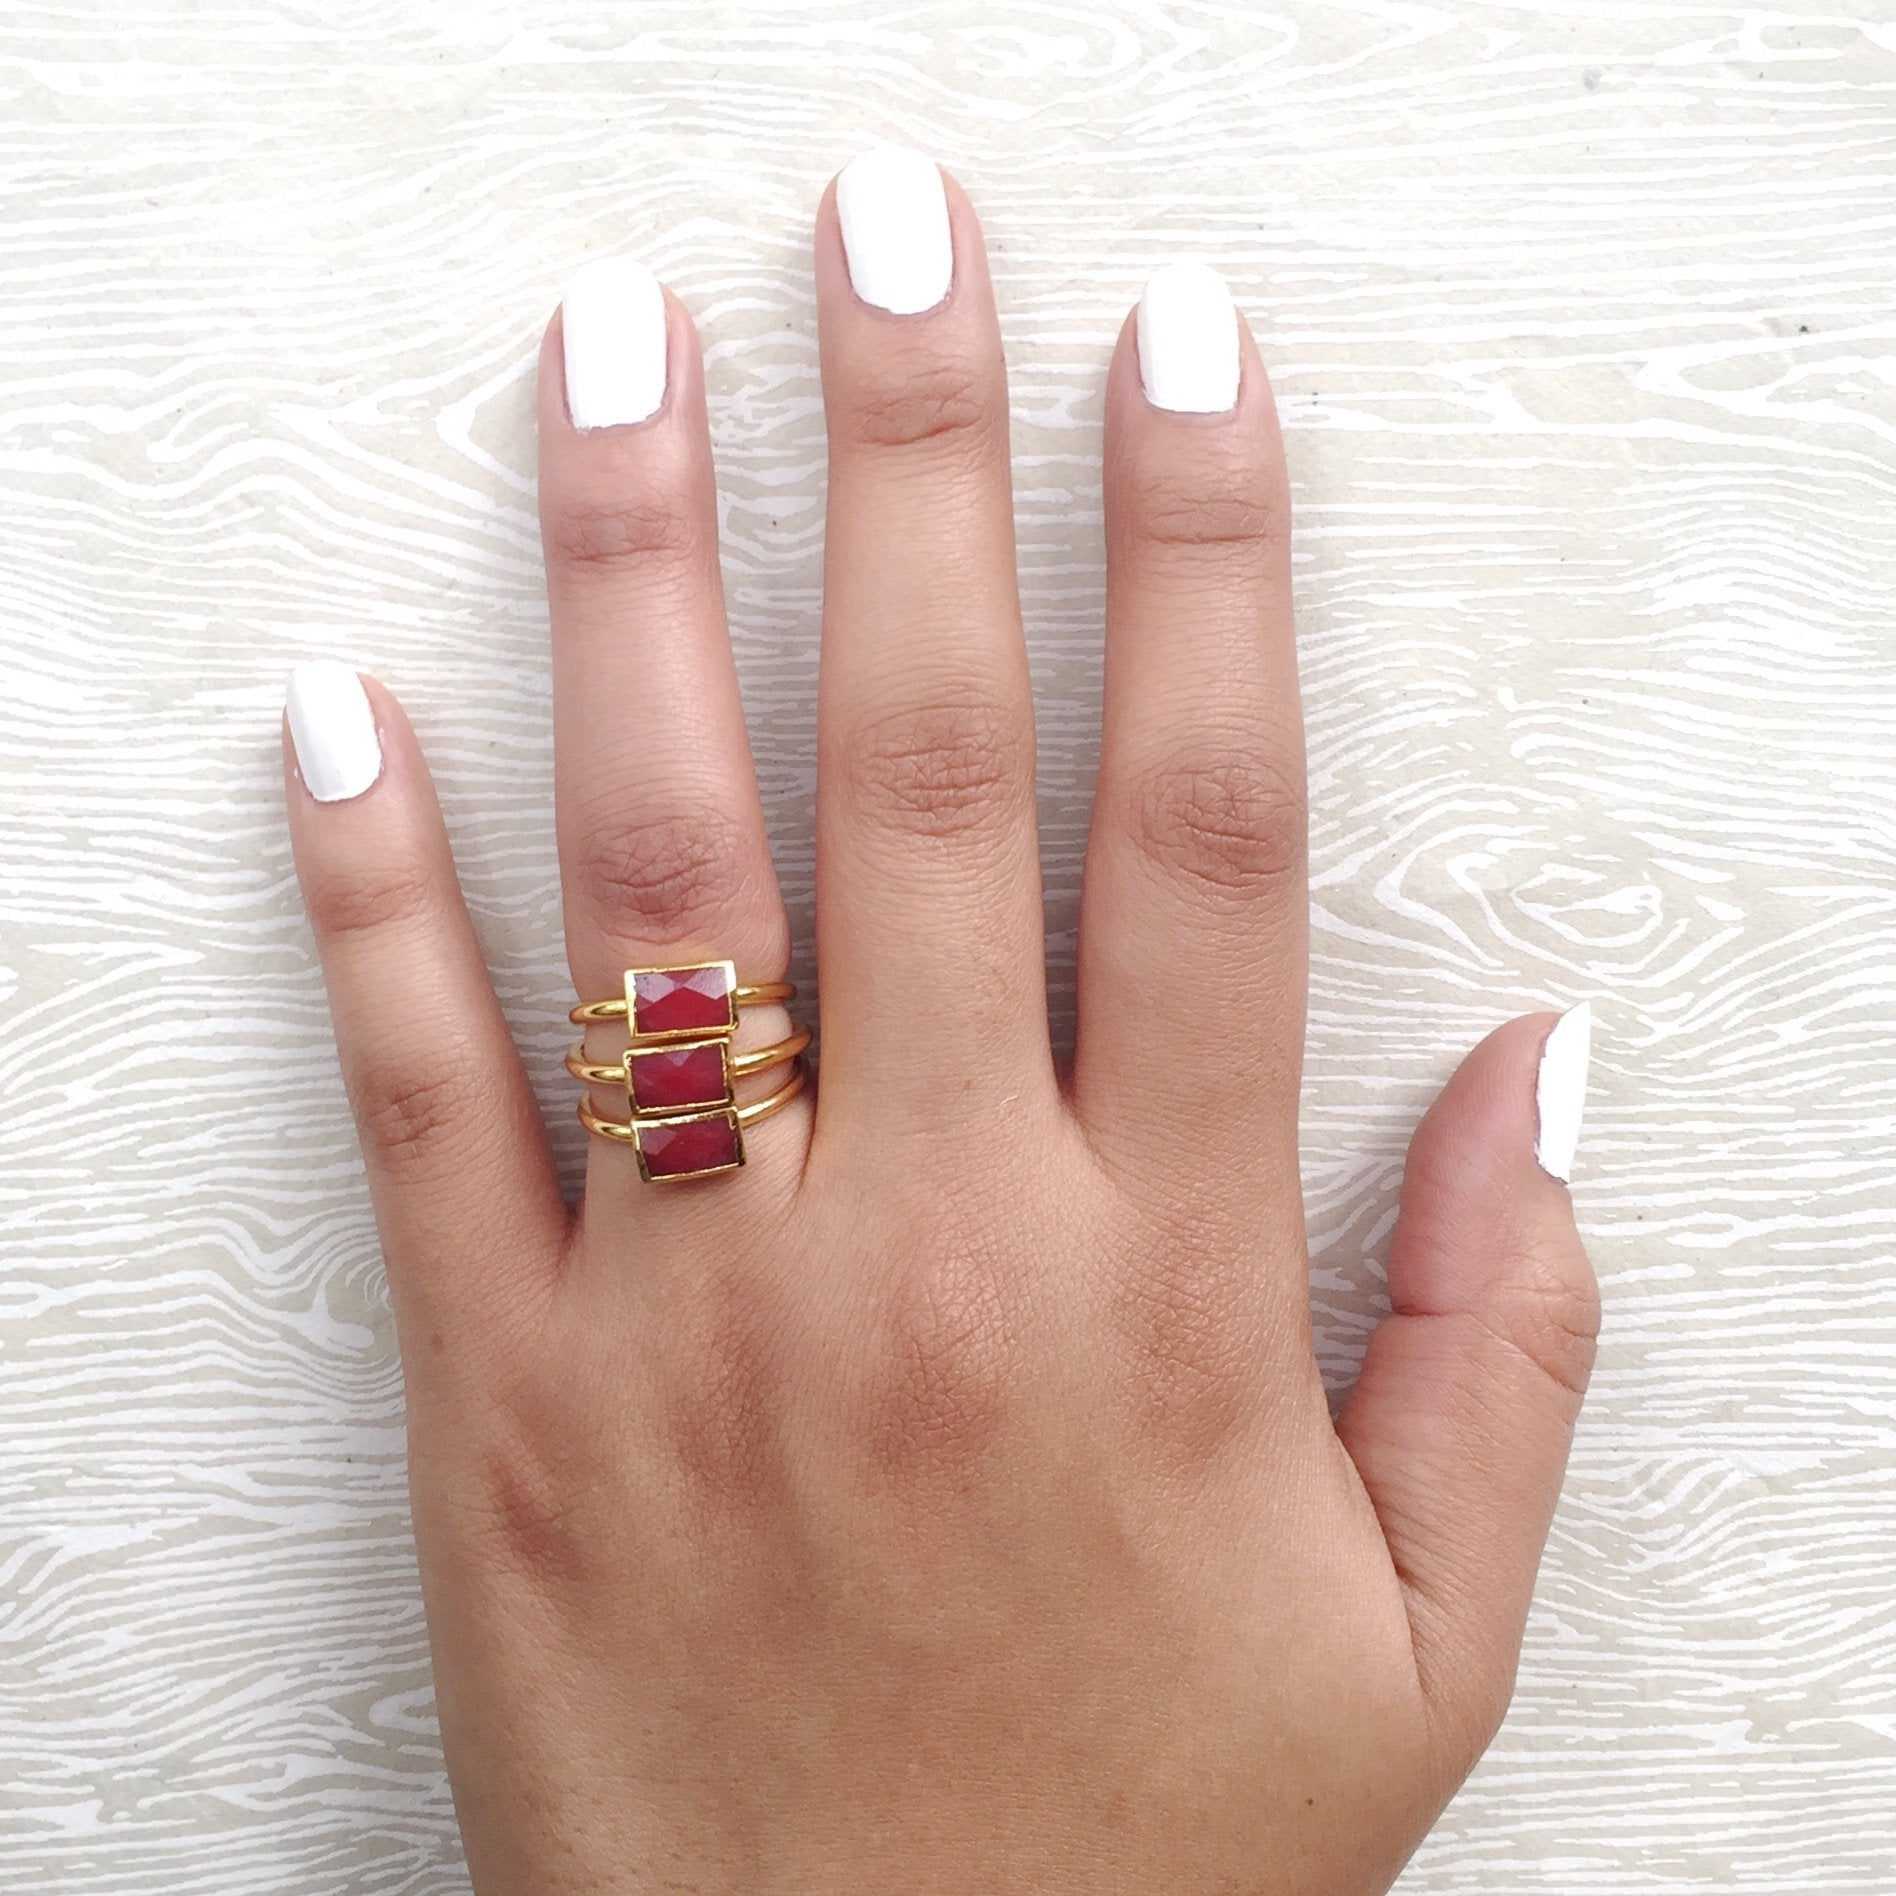 semiprecious red stone rectangular stacking rings on hand